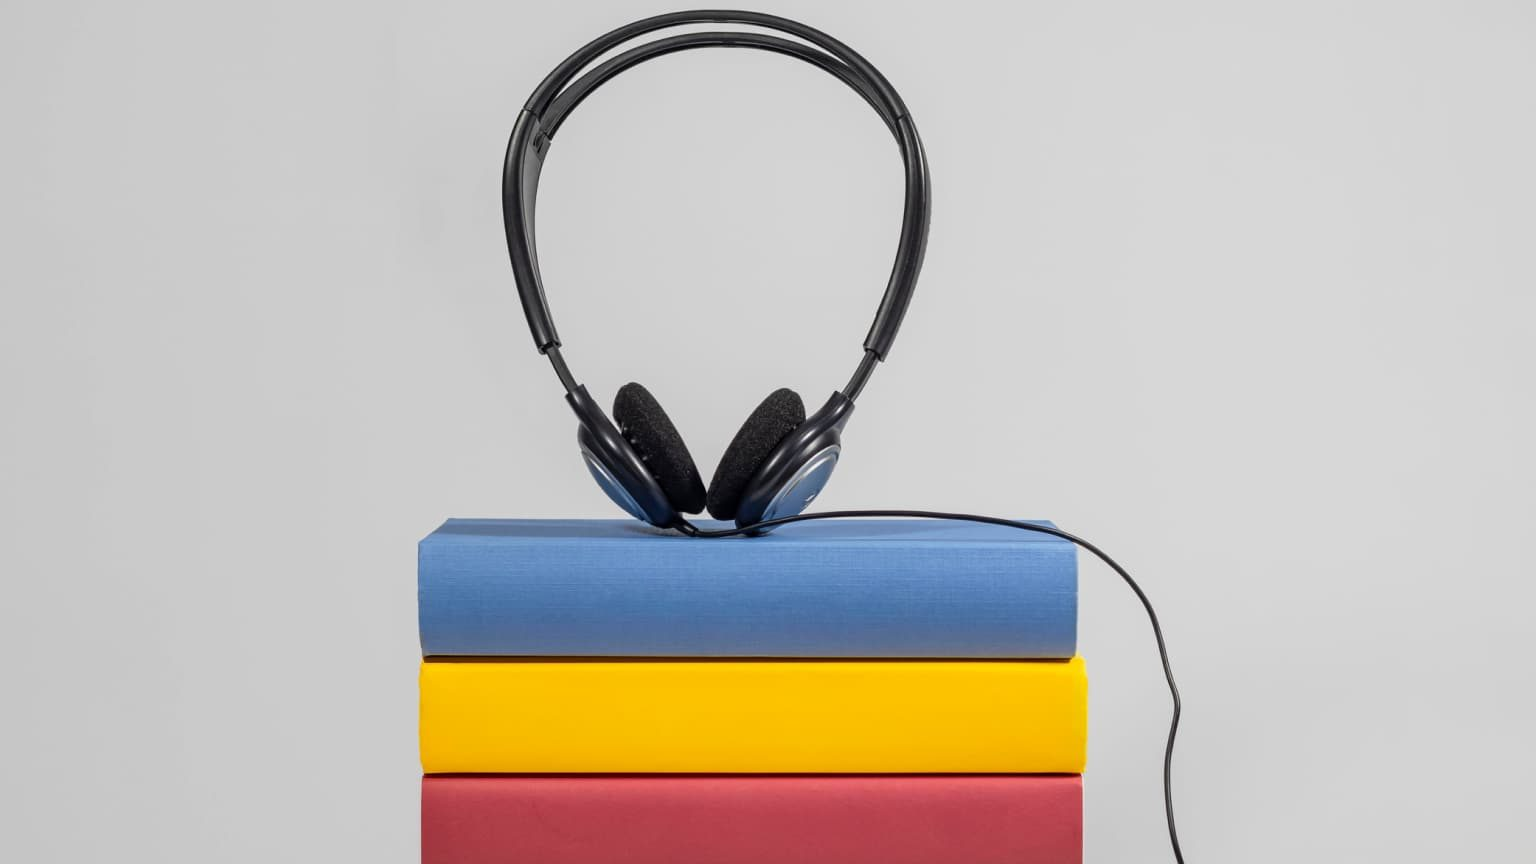 headphones over colored books